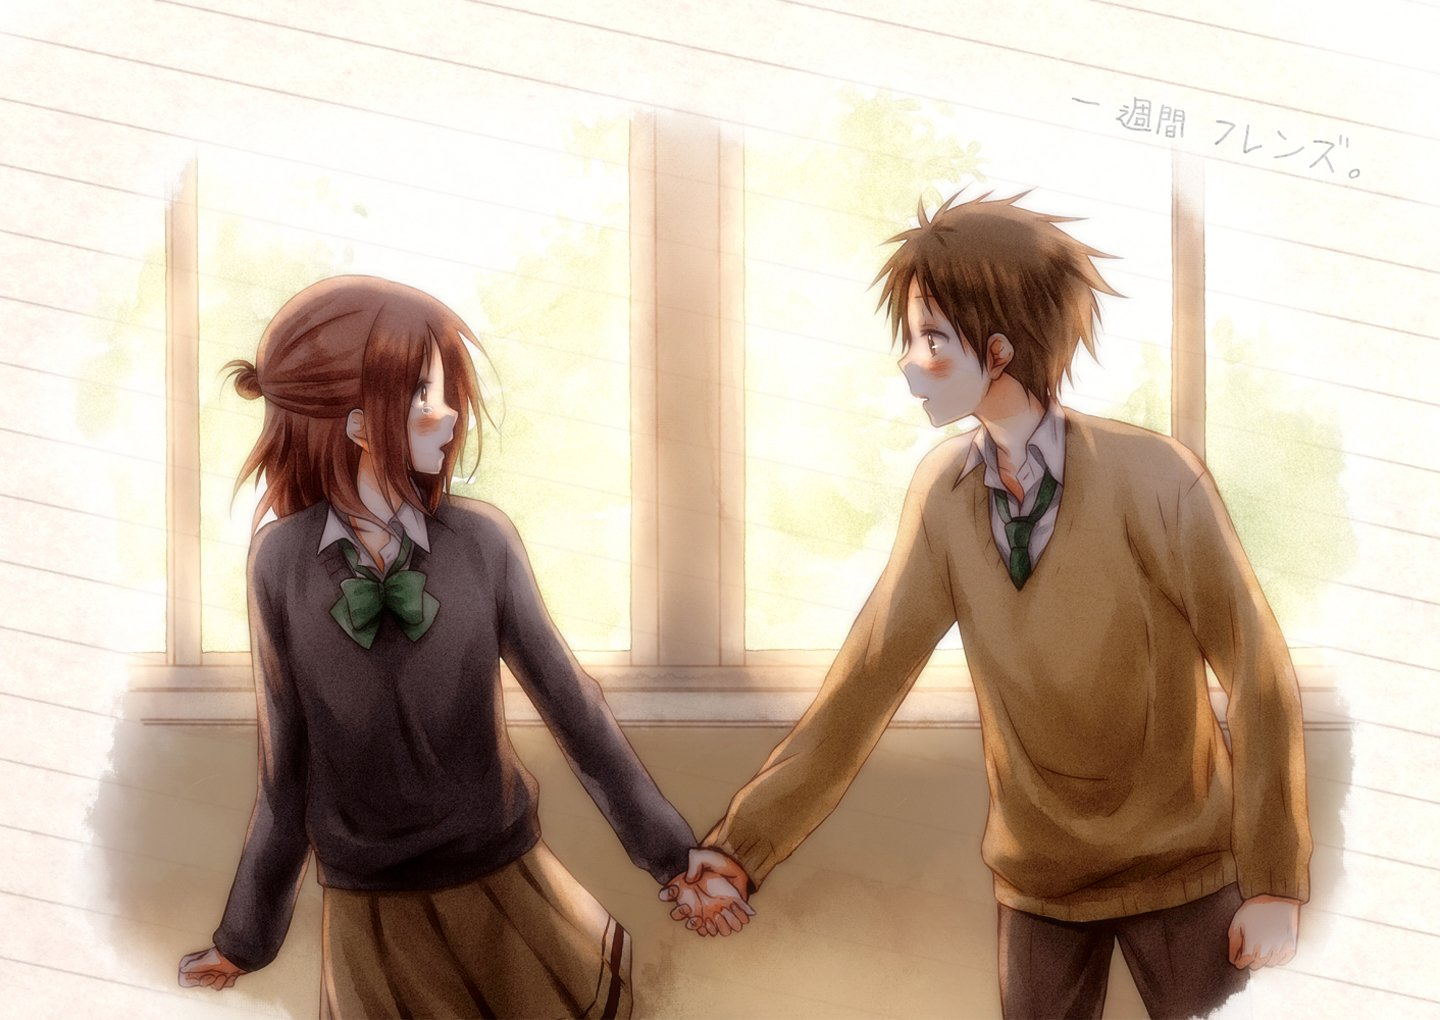 Cute Couples Holding Hands Wallpapers Anime Couple Love School Uniform Pretty Wallpaper